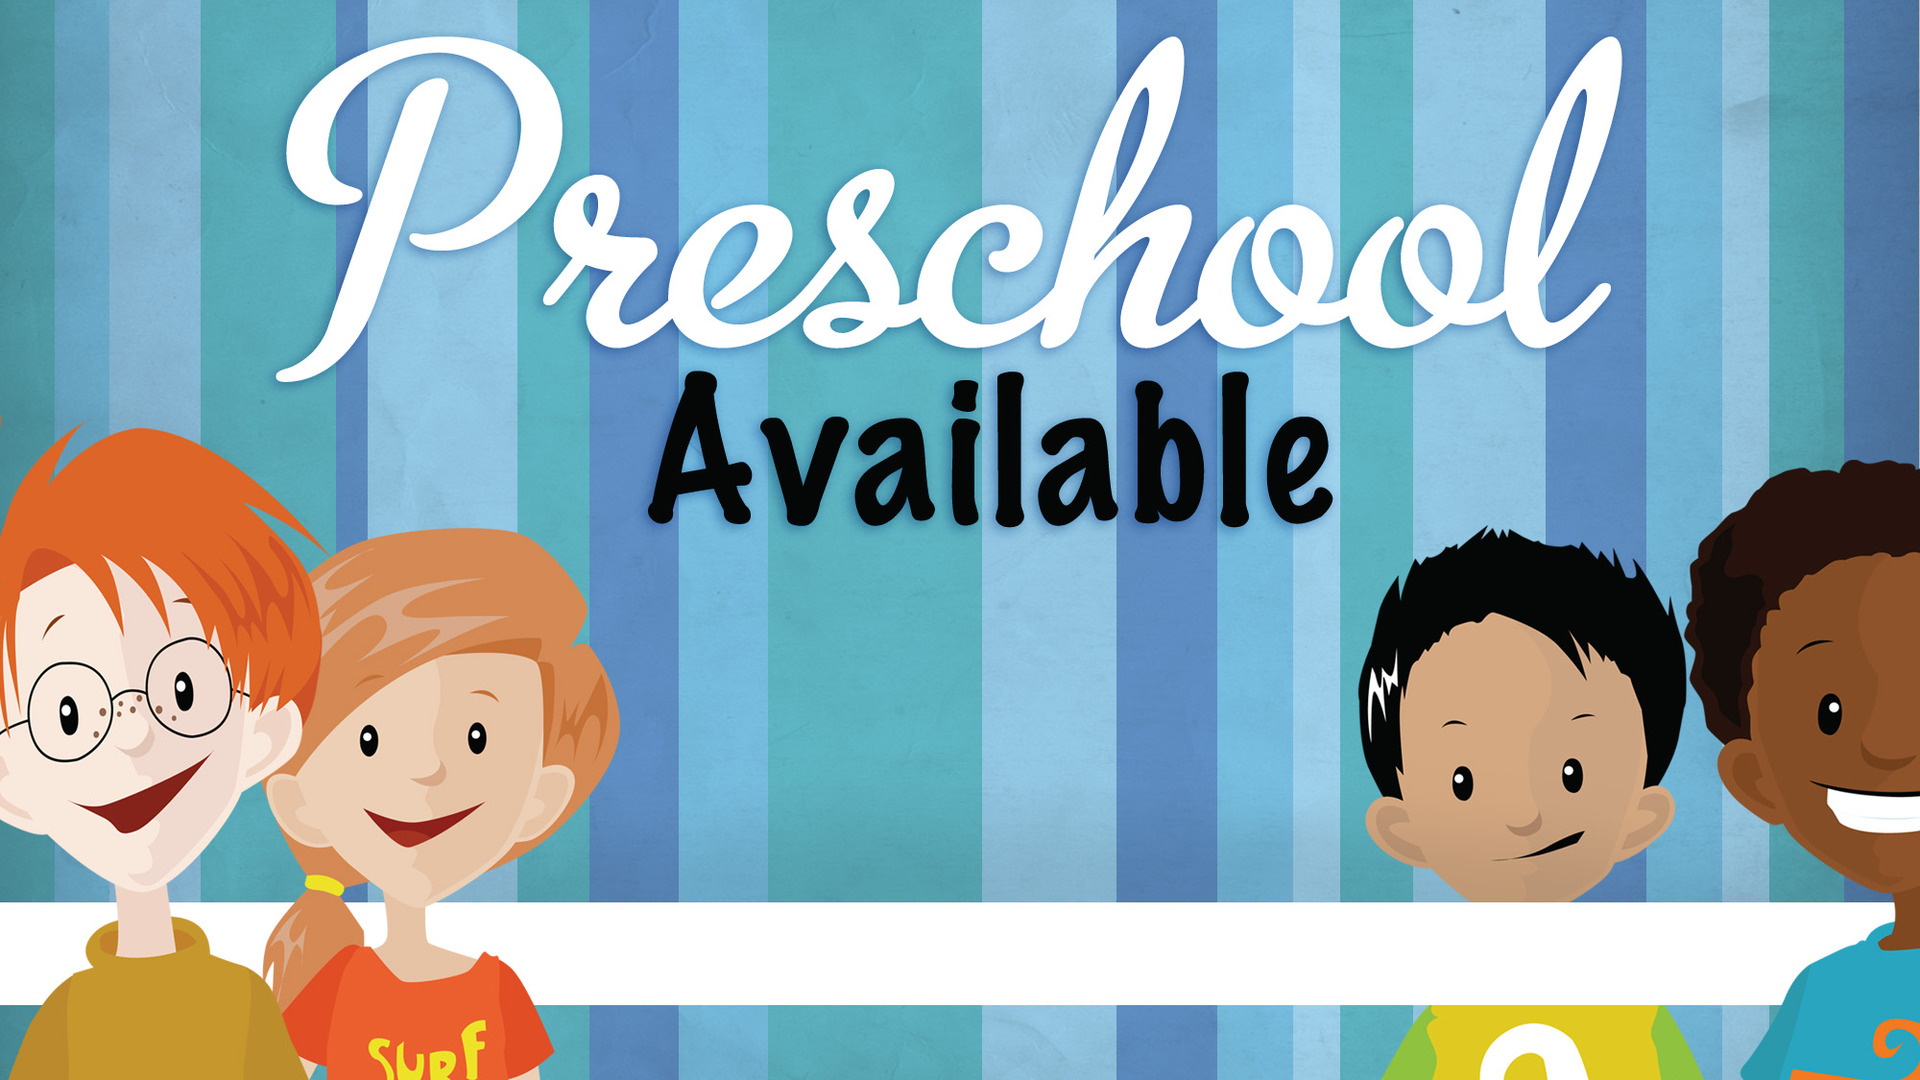 preschool_available-title-2-still-16x9.jpg